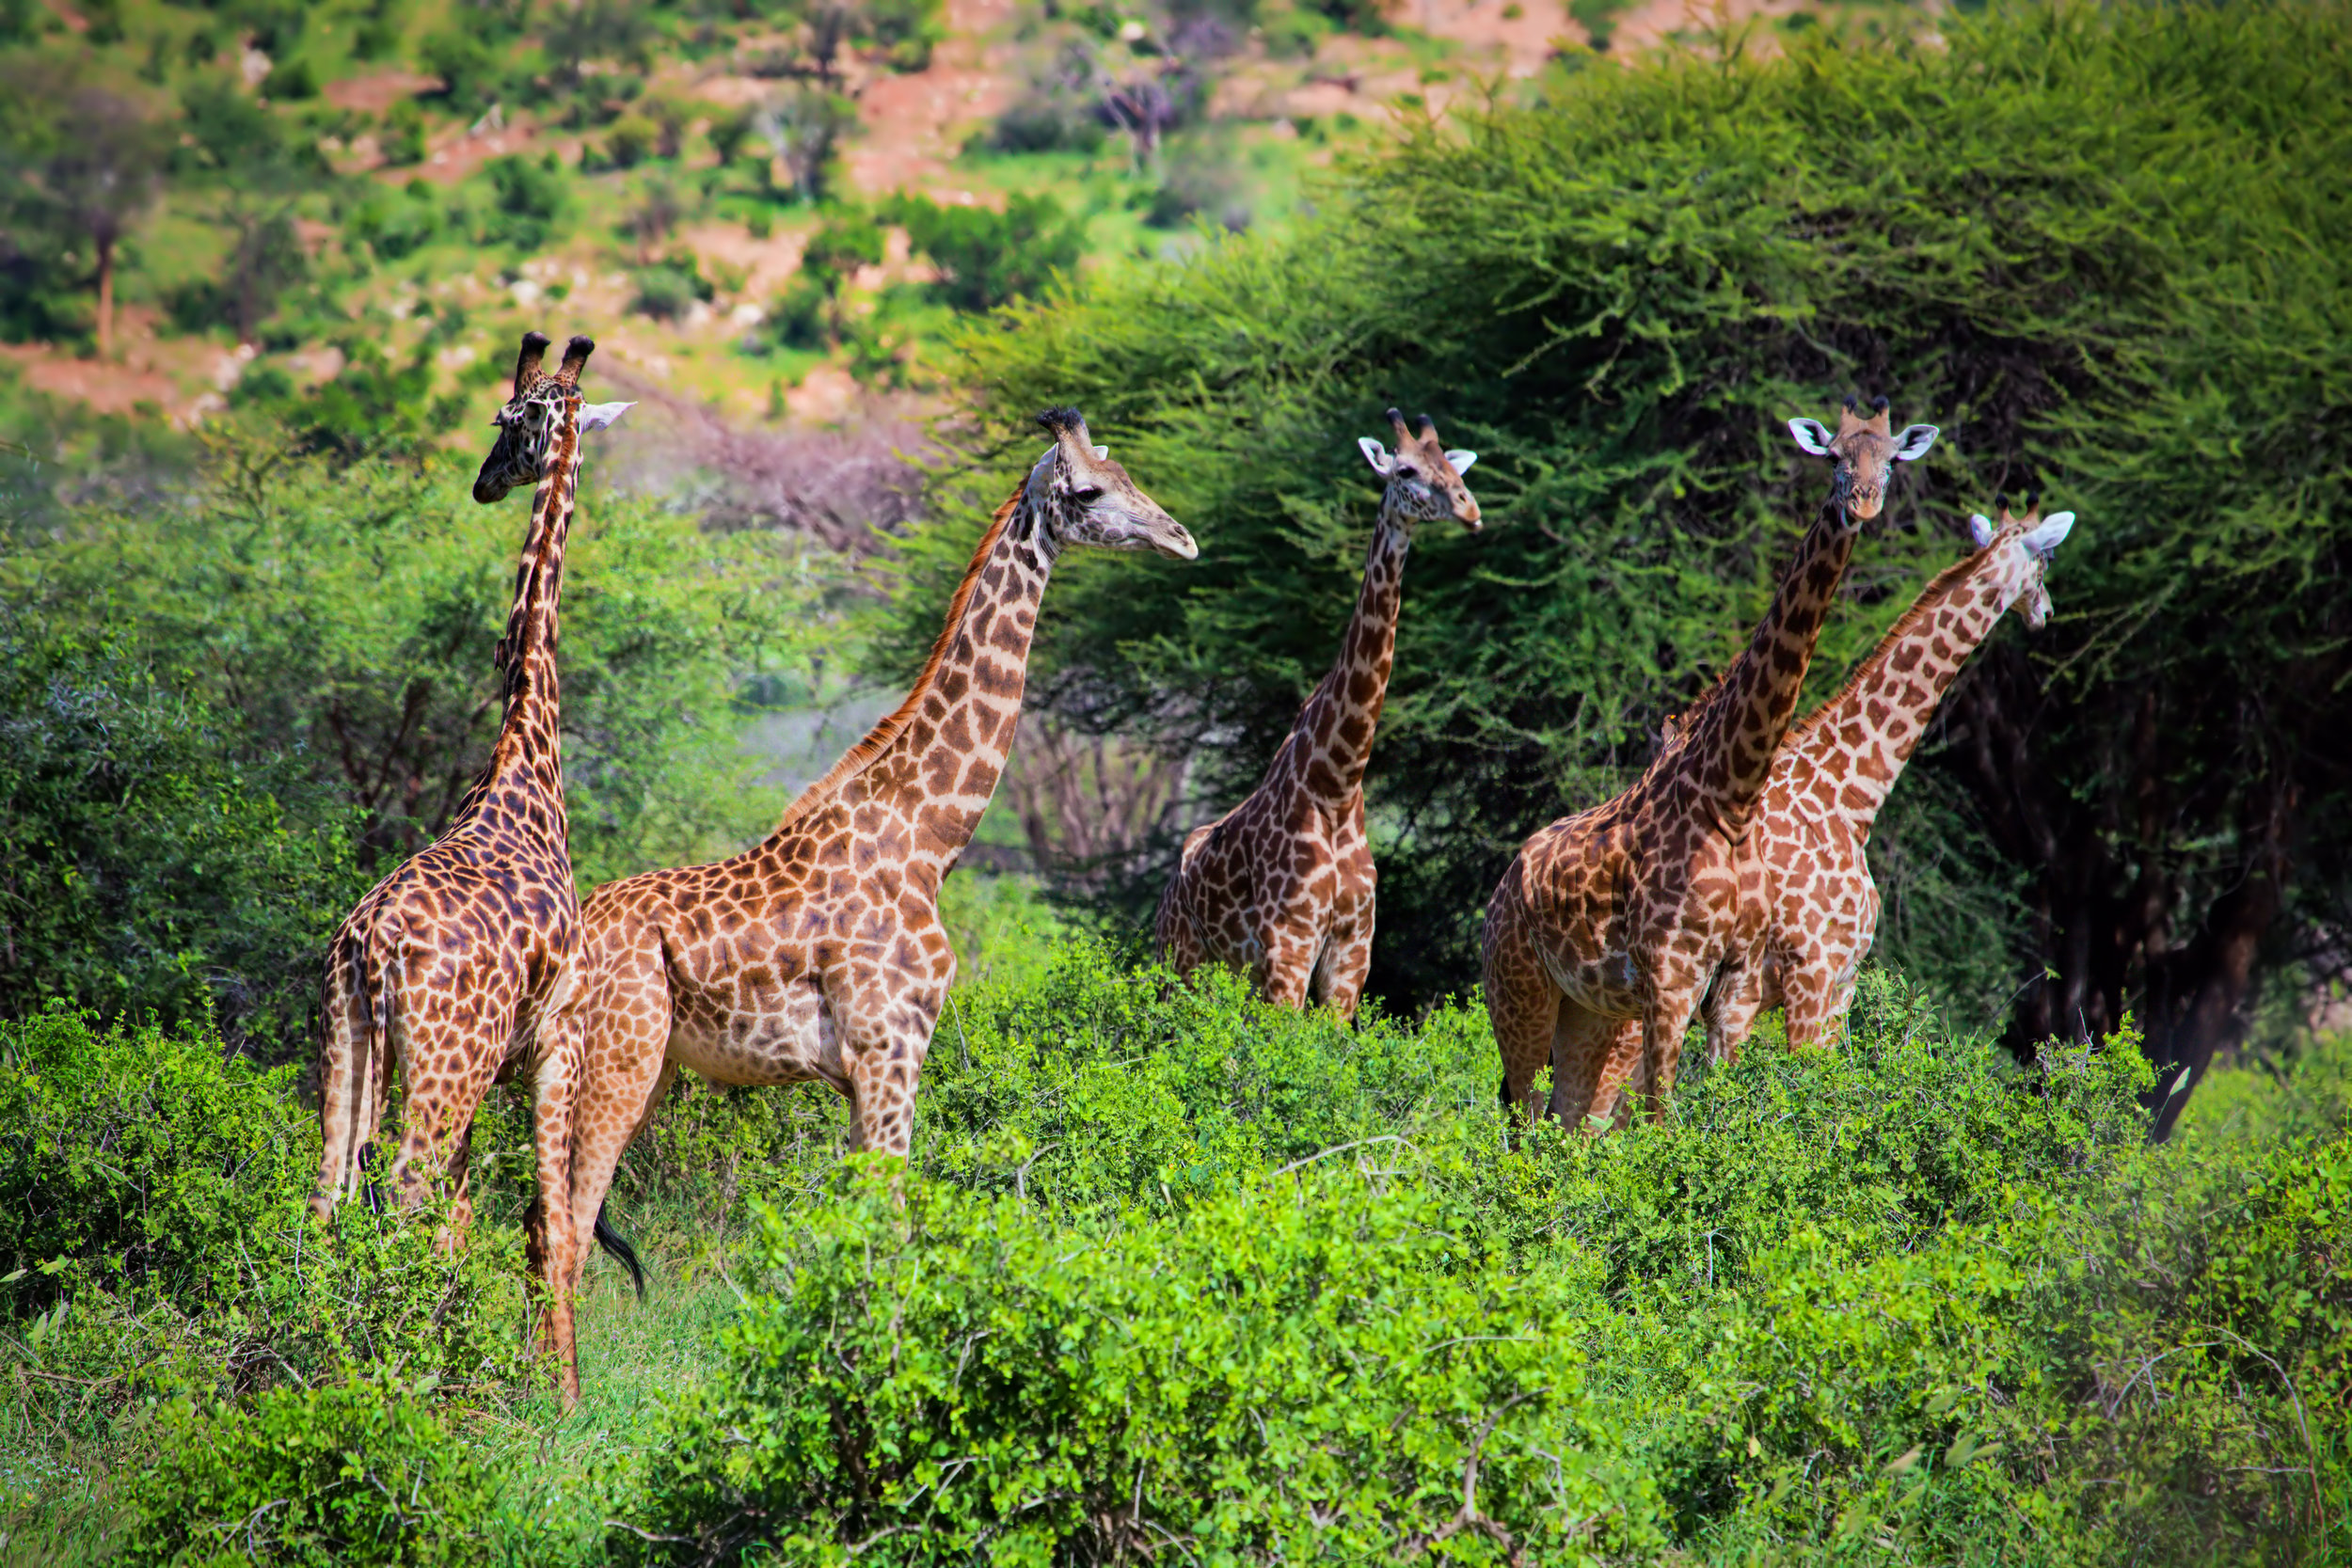 kenya_bigstock-Three-giraffes-on-savanna-Saf-42915370.jpg